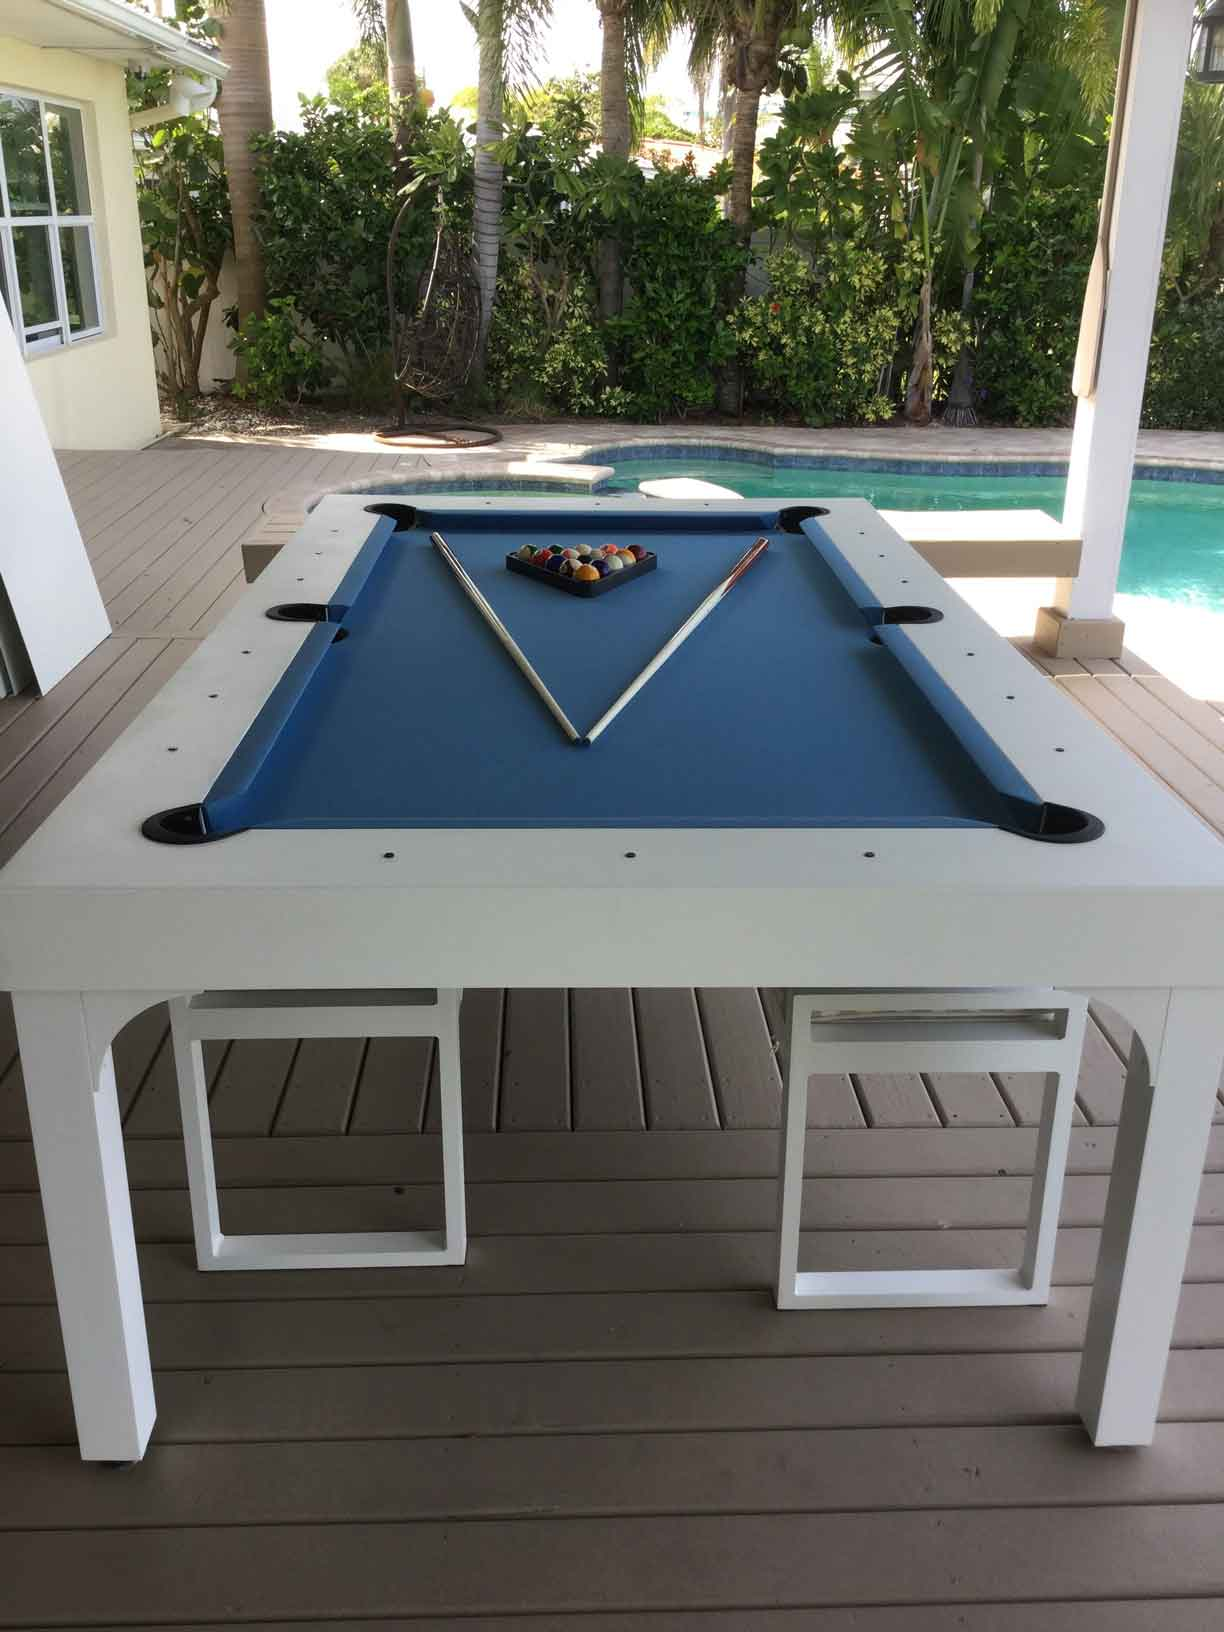 Balcony custom outdoor pool table by R&R Outdoors All Weather Billiards in Southwest Florida home